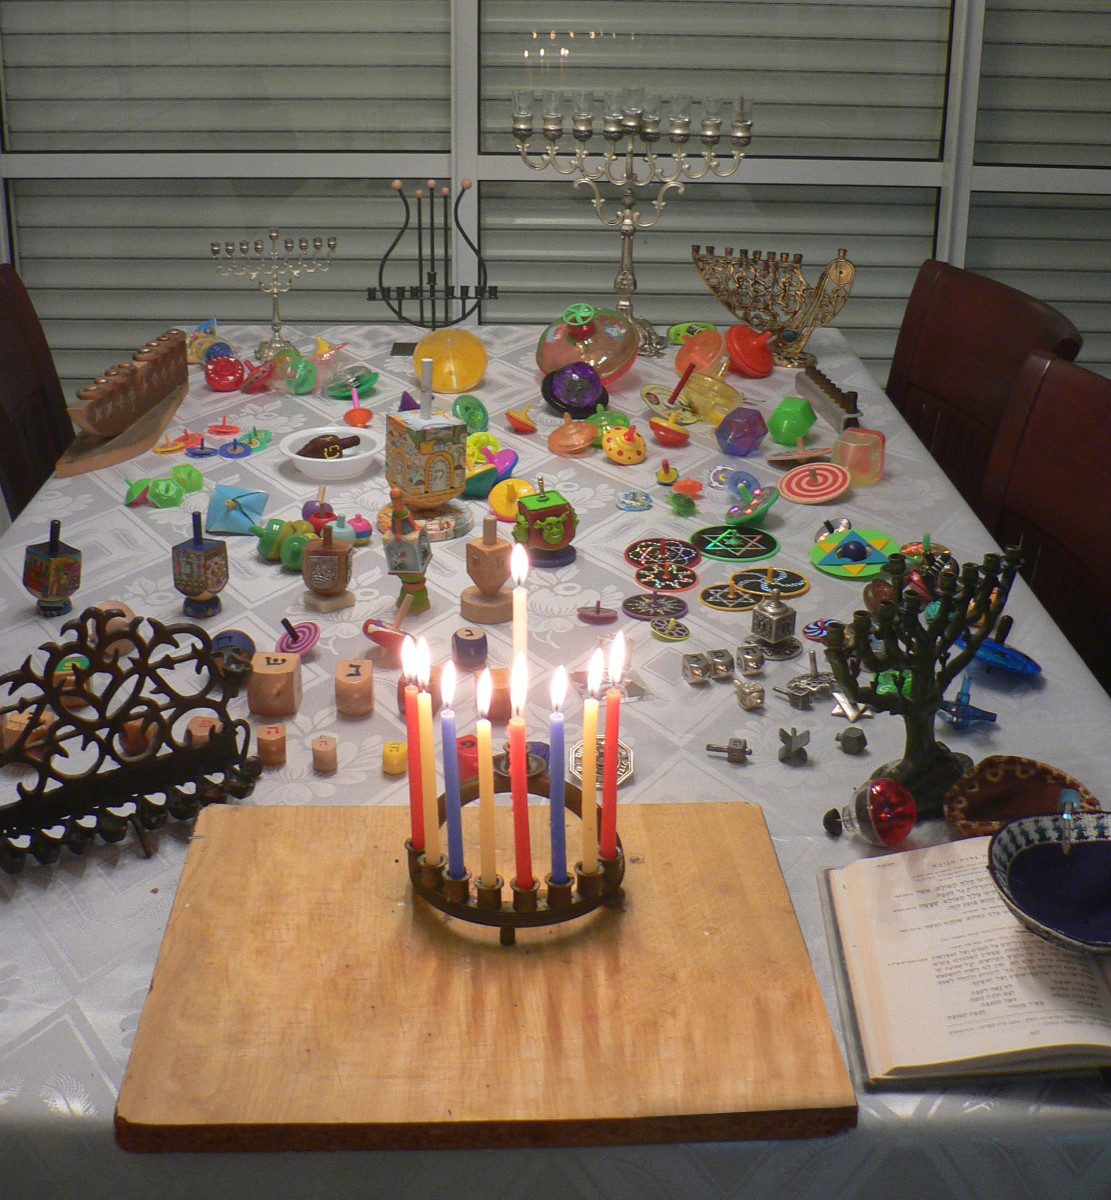 The menorah and dreidel are traditional Hanukkah objects.